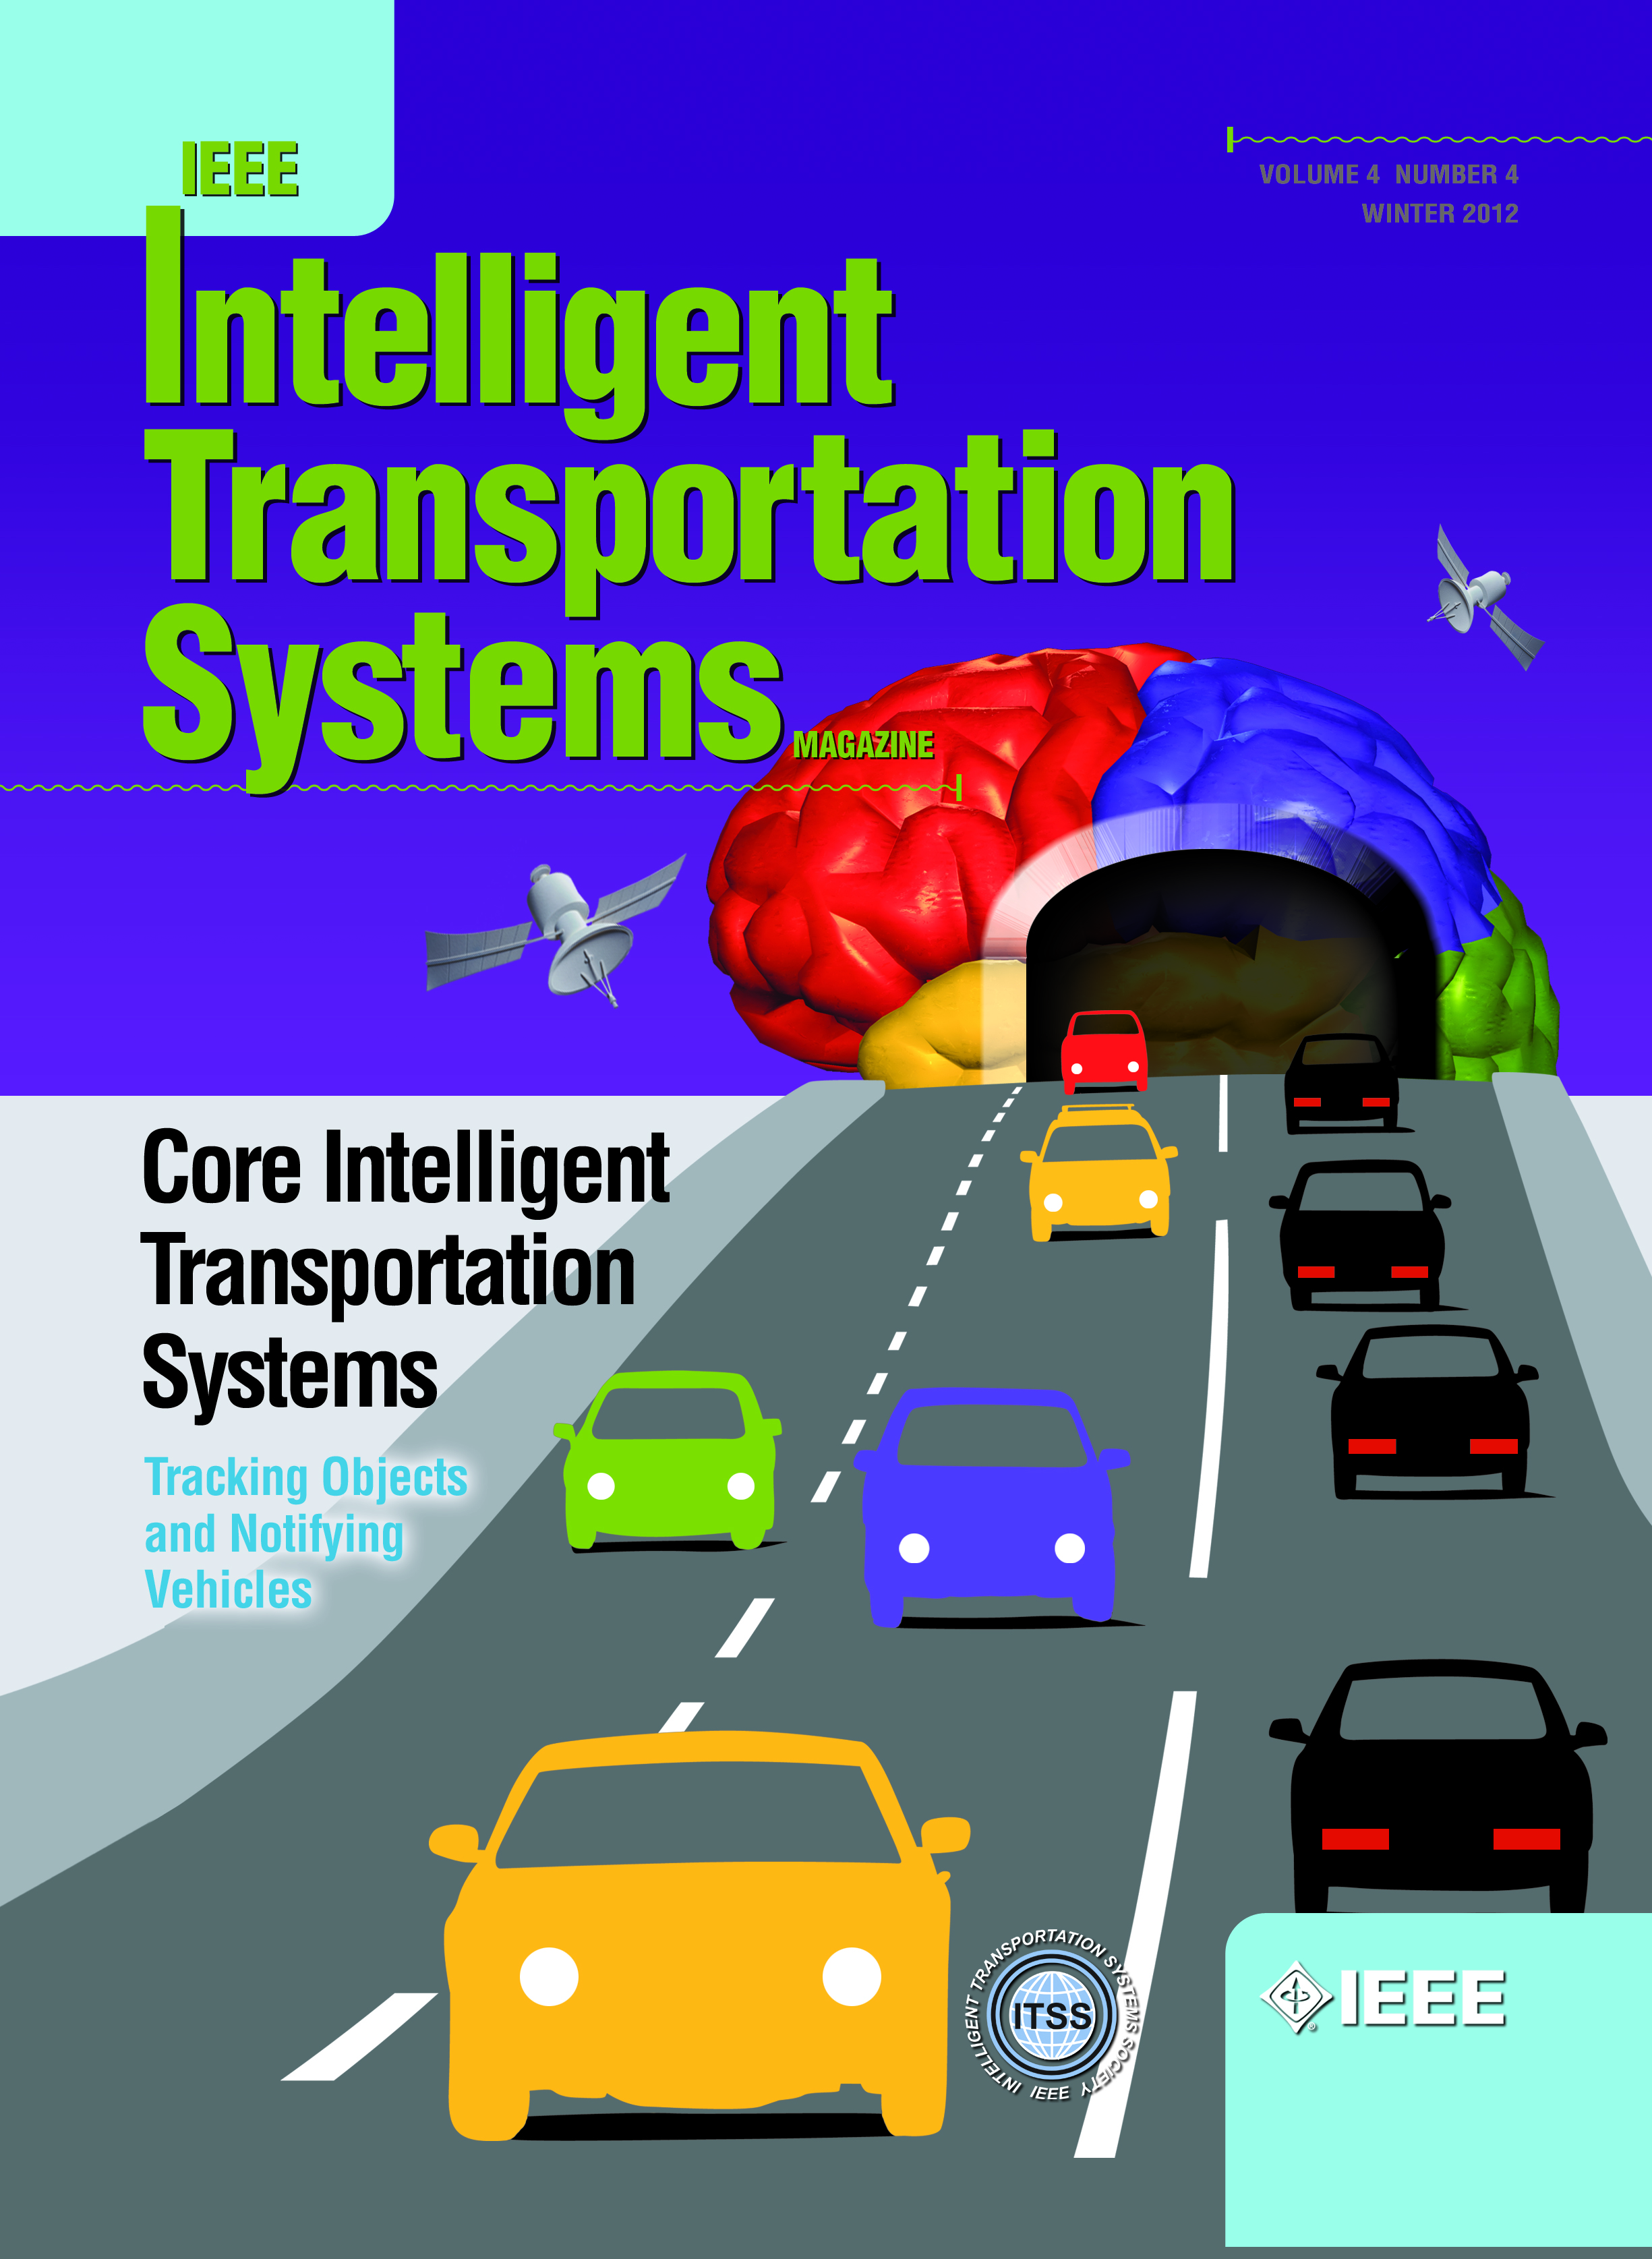 Intelligent Transportation Systems Magazine, IEEE